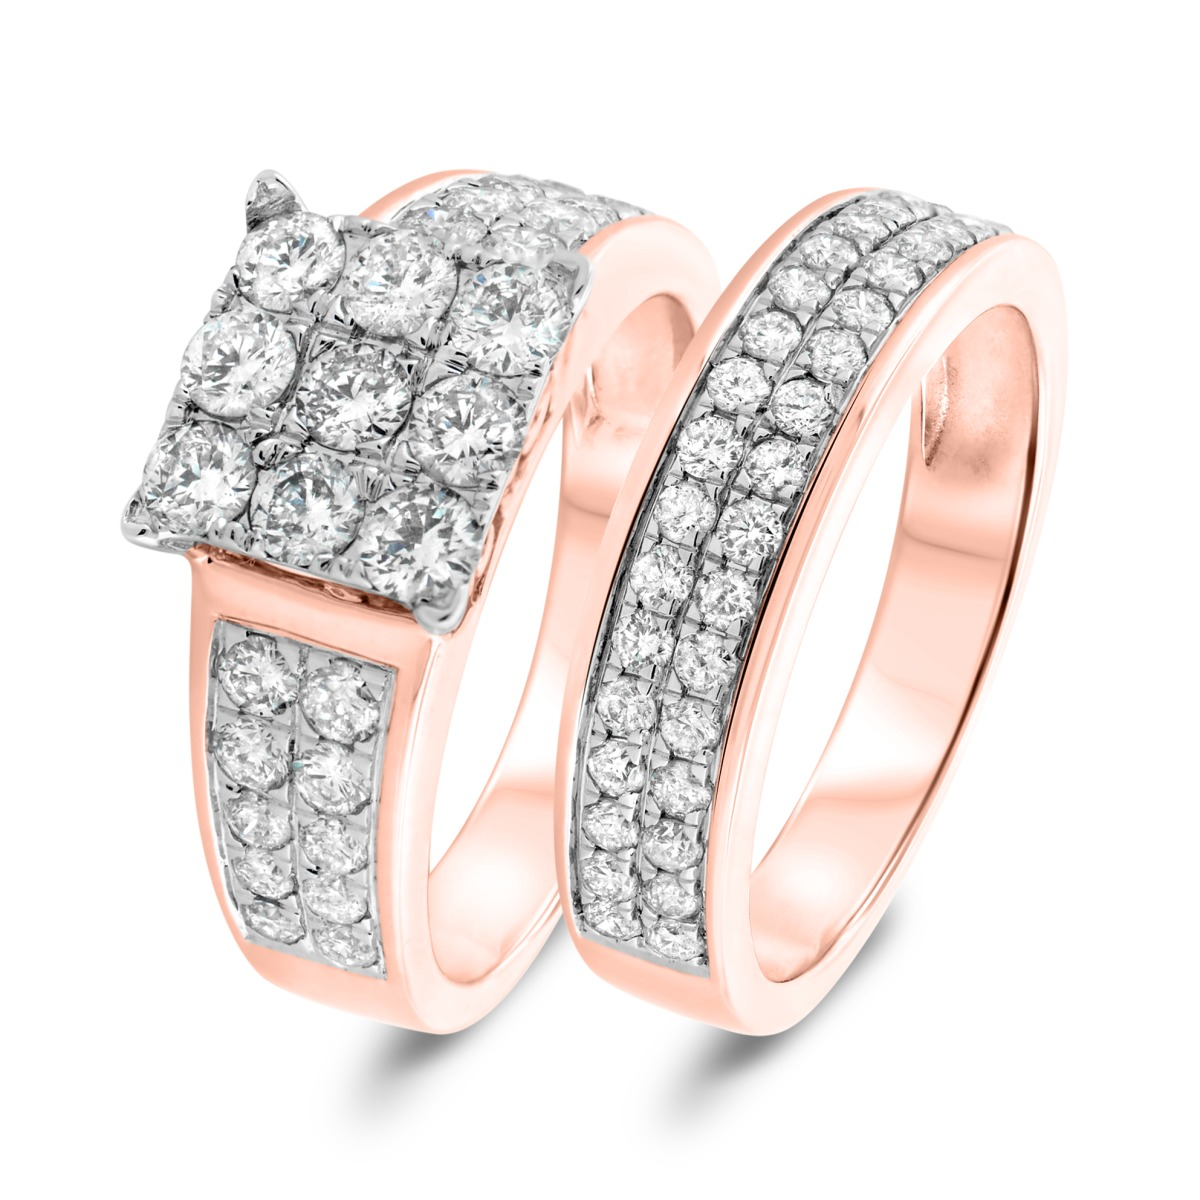 2 1/5 Carat T.W. Diamond Matching Bridal Ring Set 14K Rose Gold